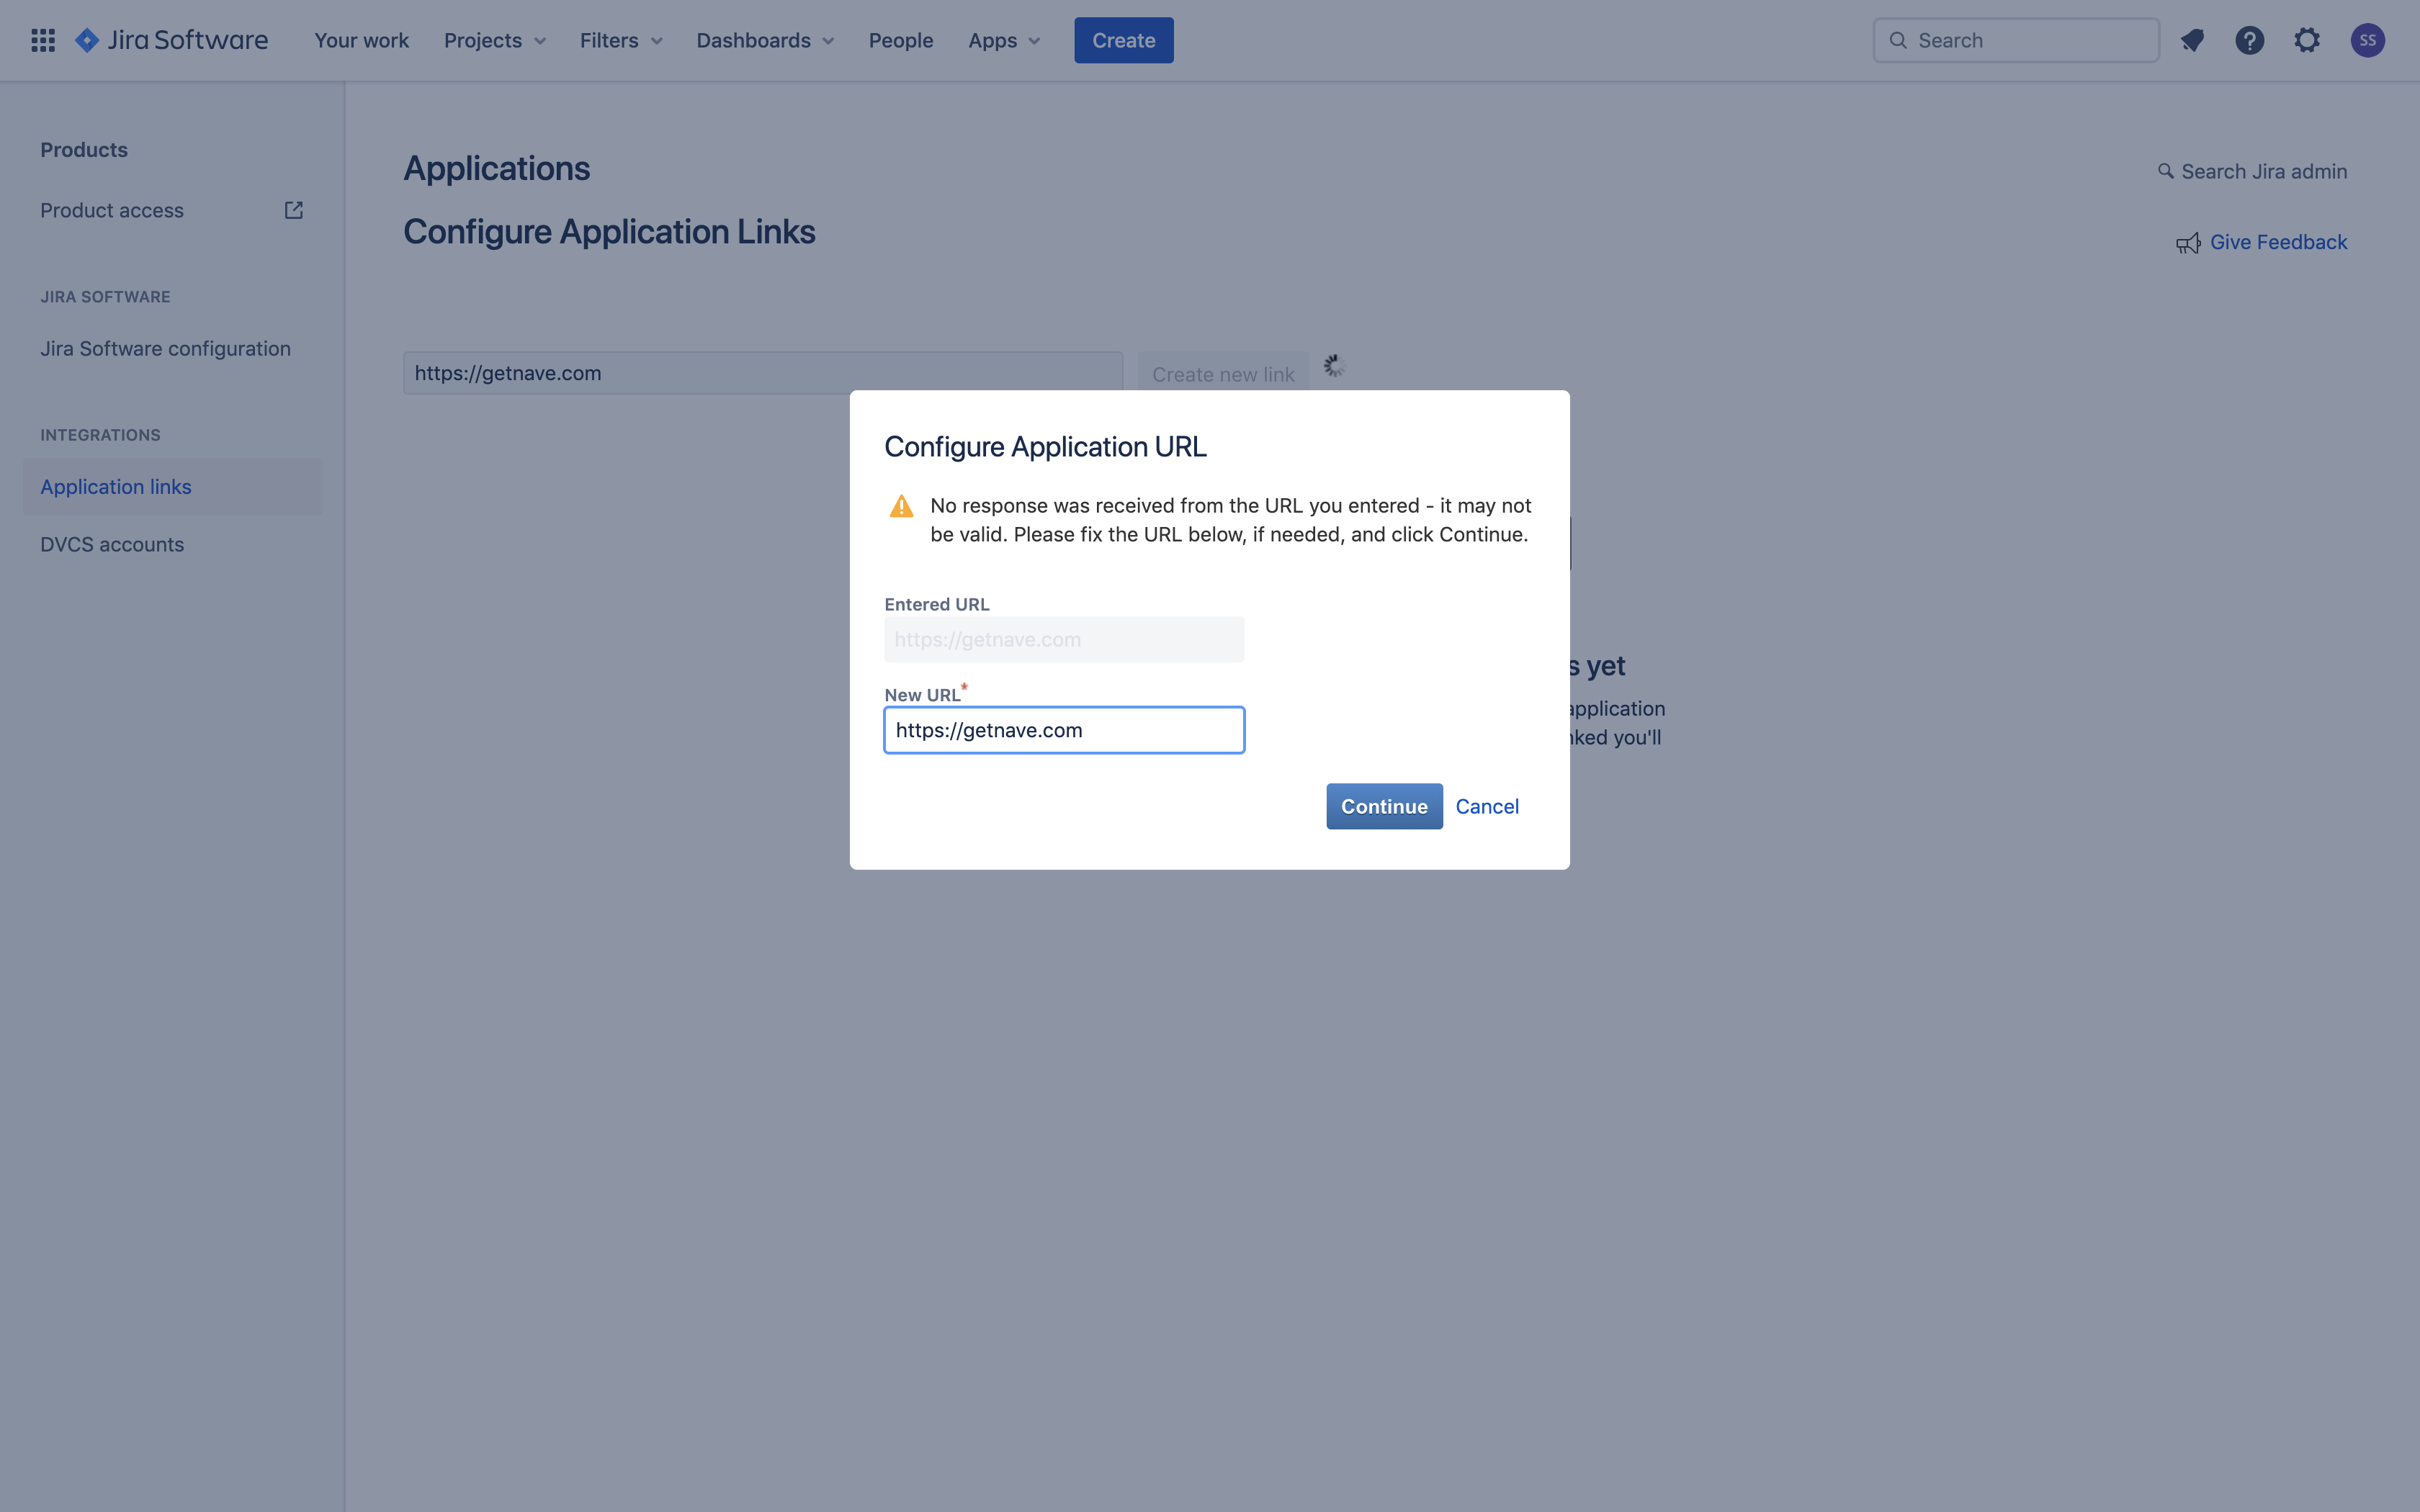 Linking Nave with Jira - Configure Application URL